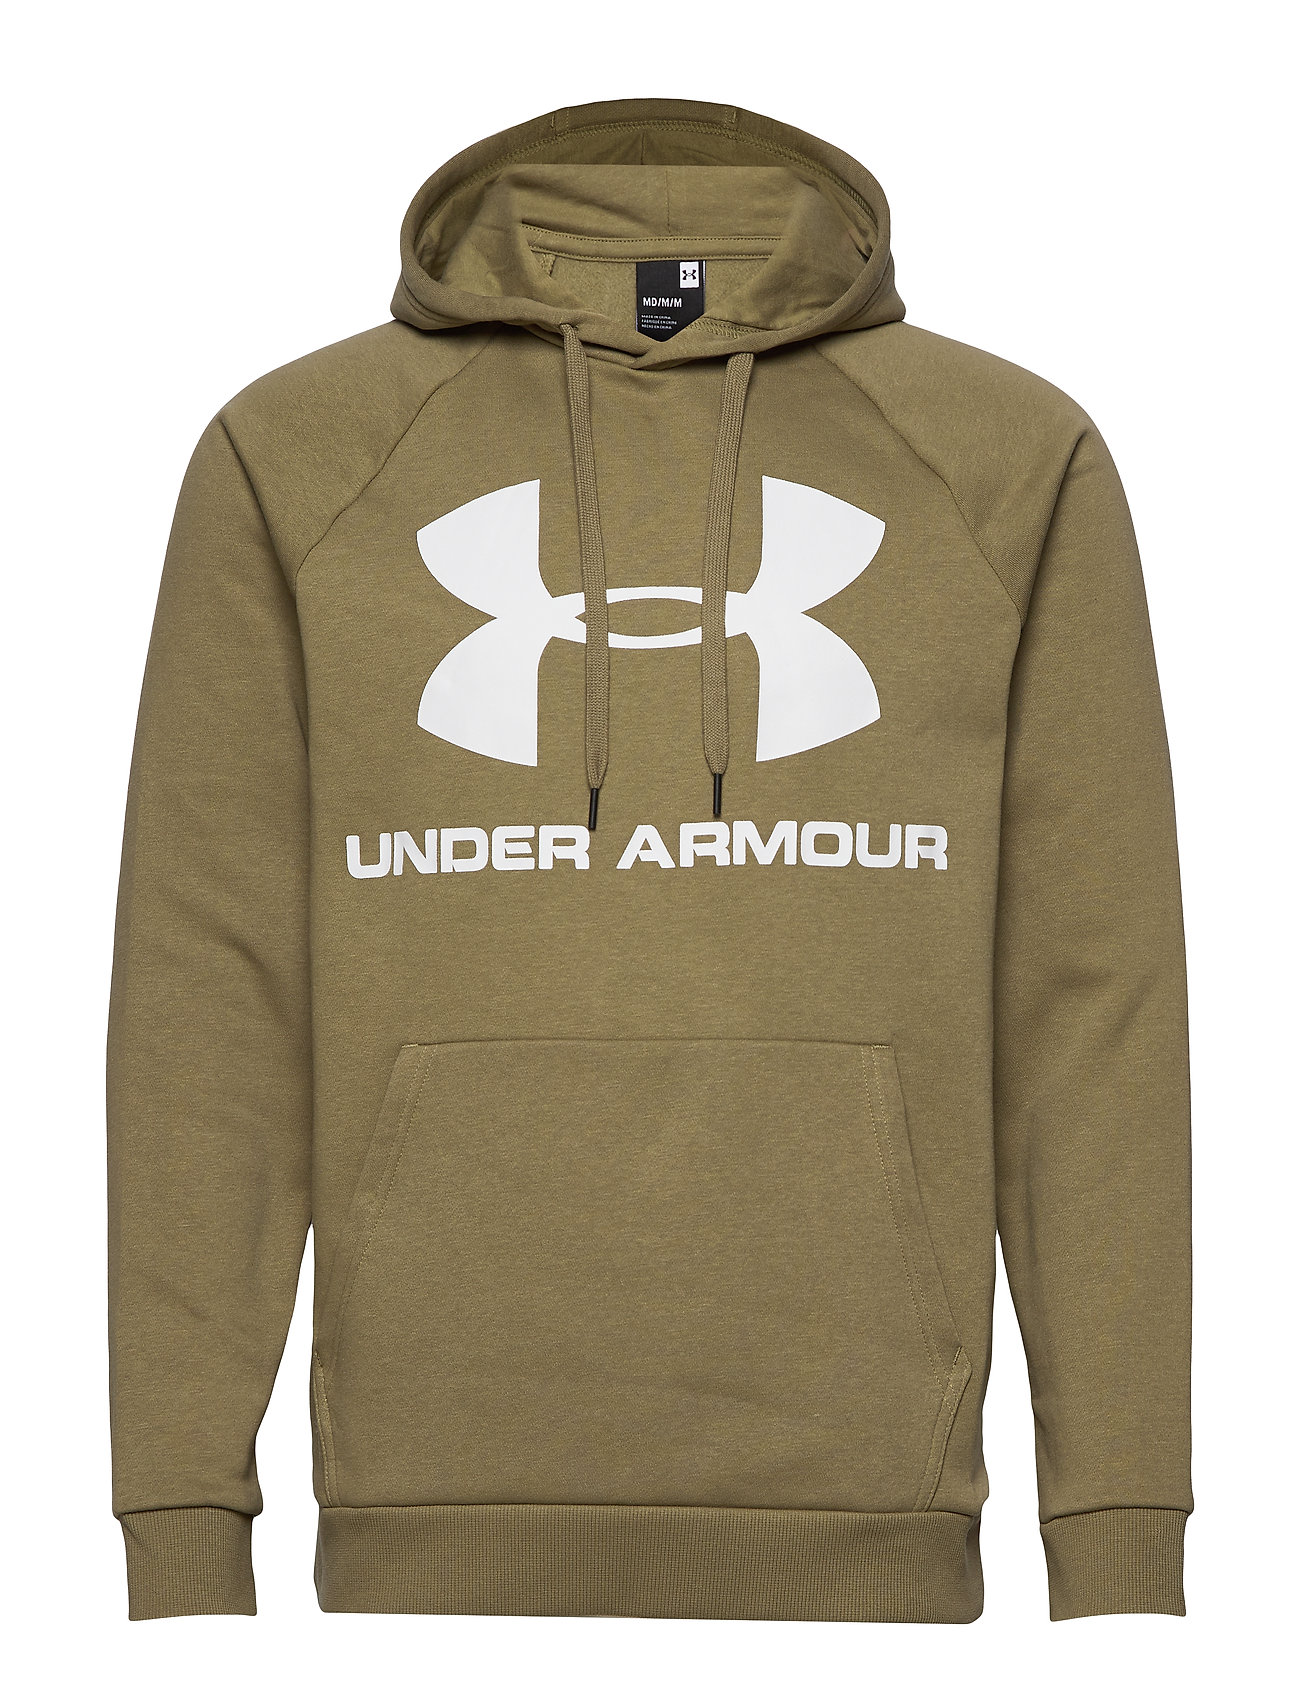 Under Armour RIVAL FLEECE SPORTSTYLE LOGO HOODIE - OUTPOST GREEN